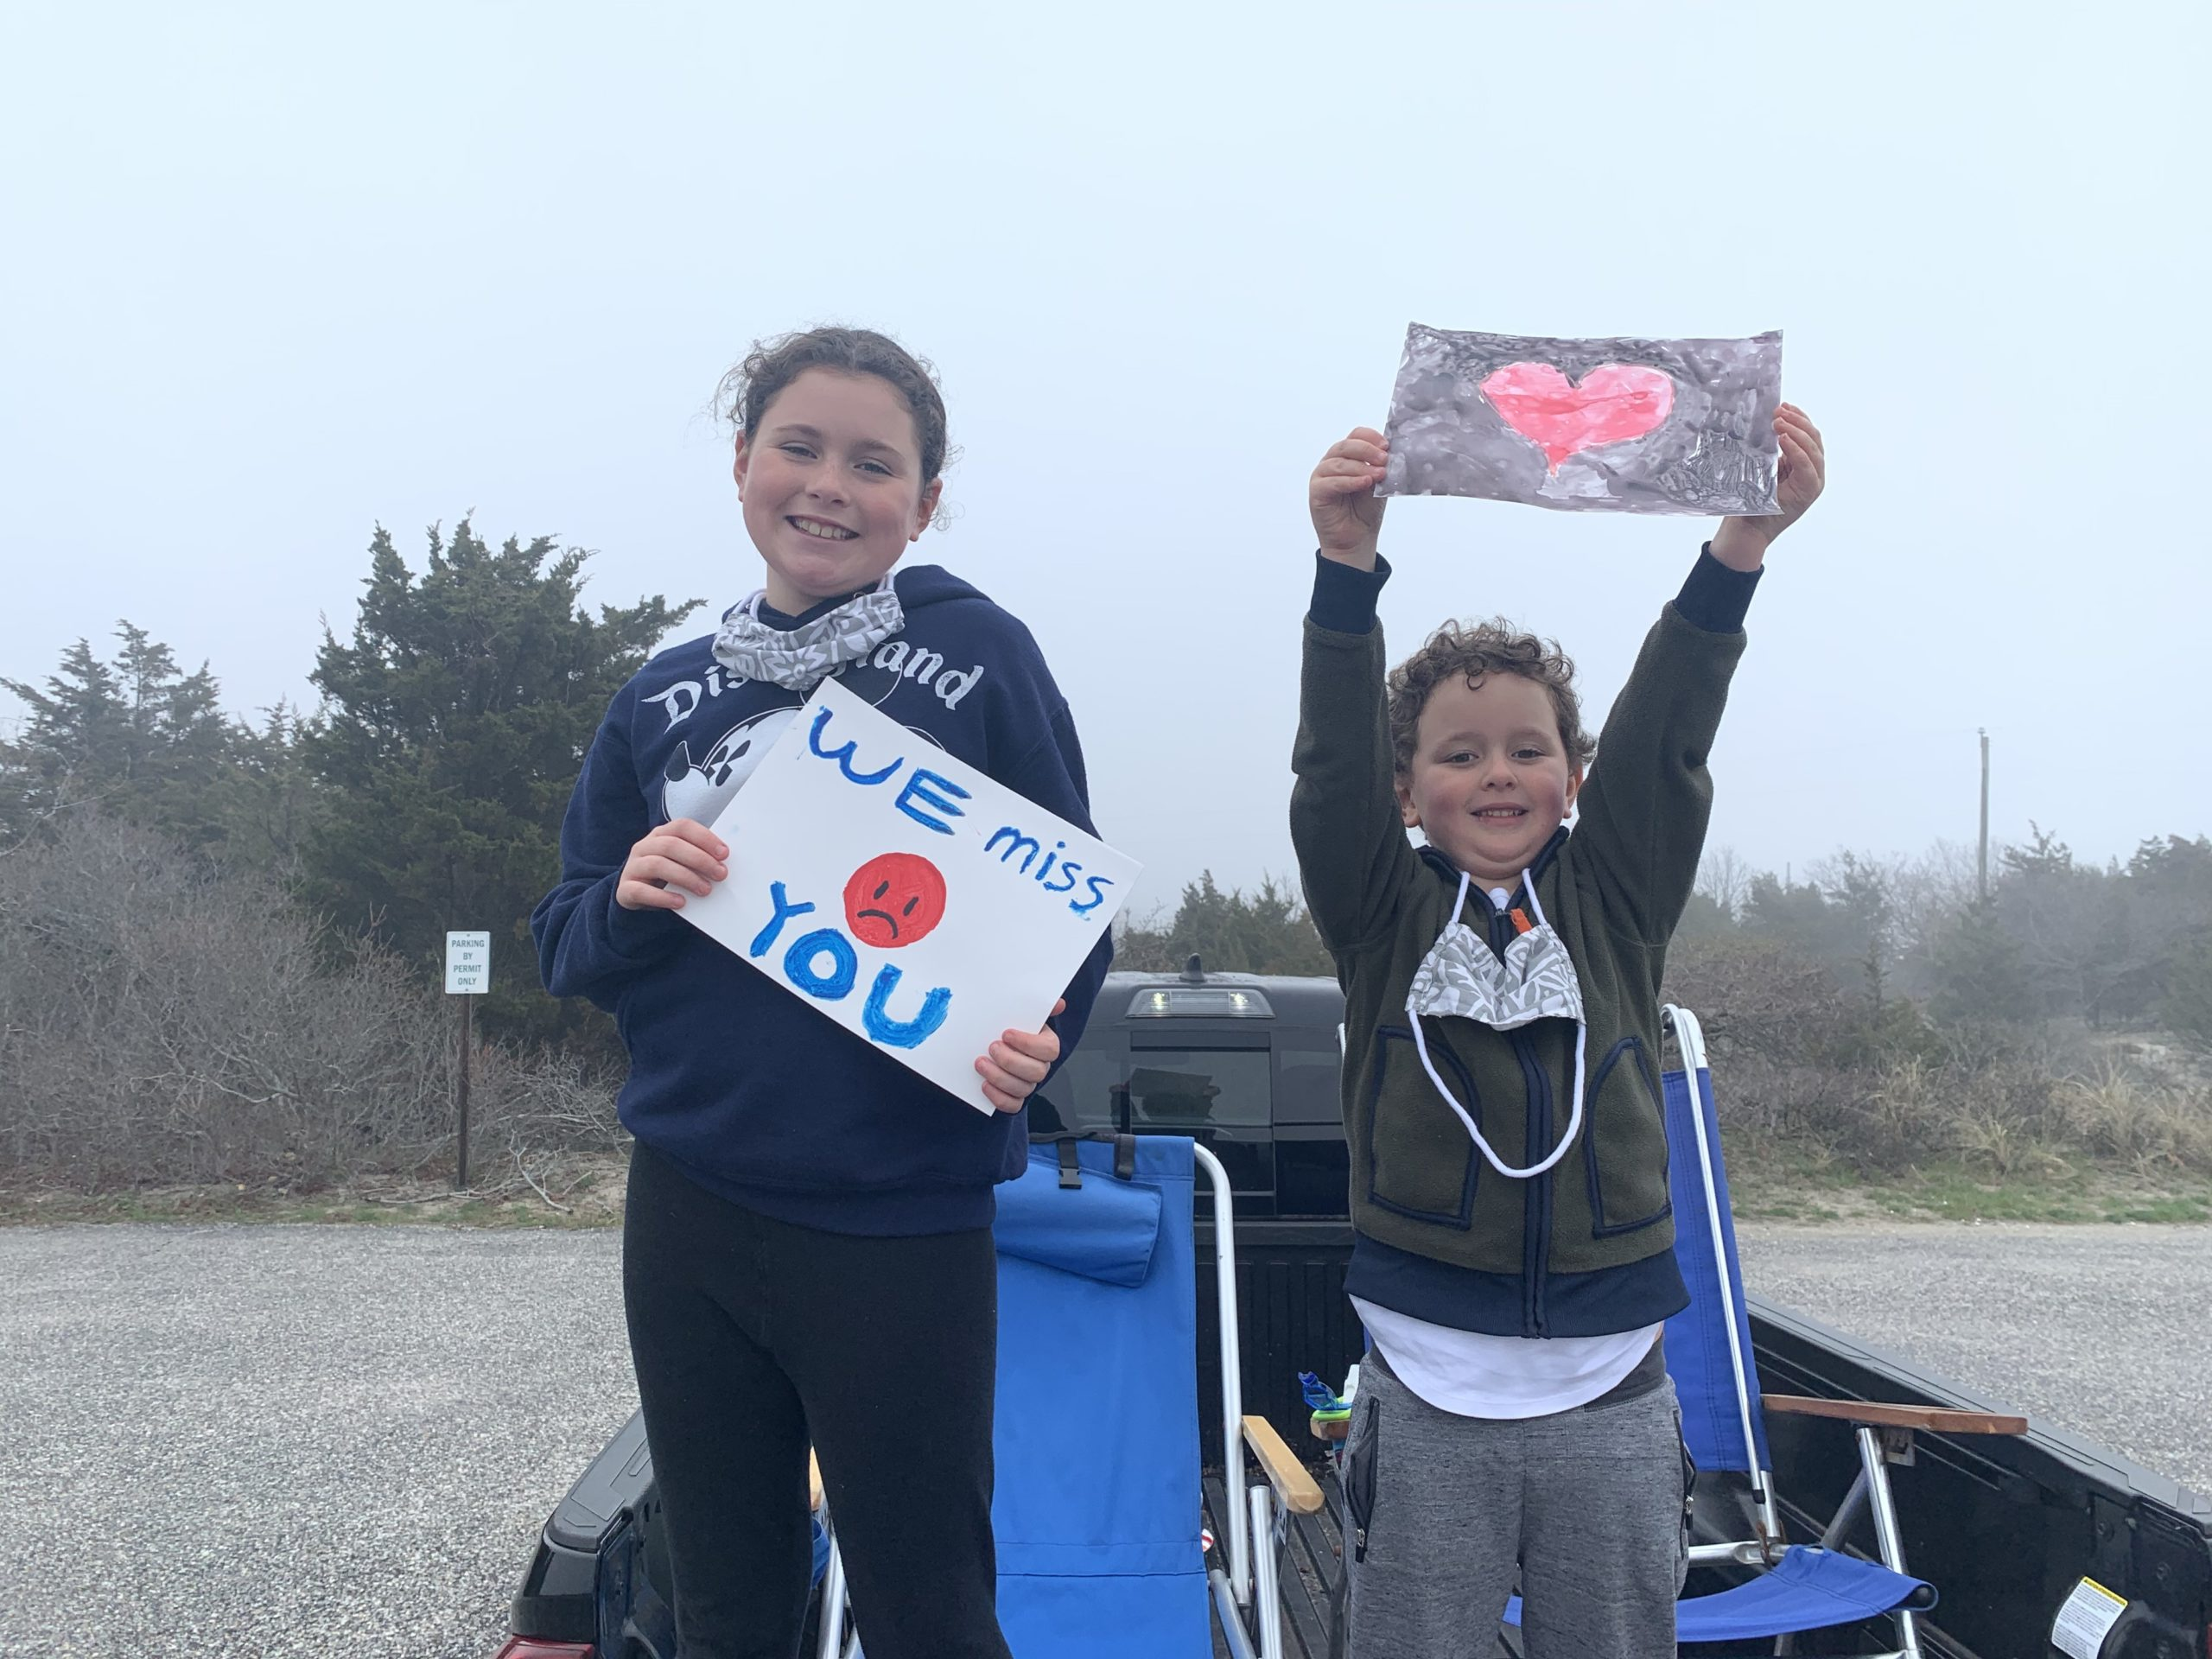 Ella and Charlie Menu display signs for their teachers during a Springs School Spirit Team drive on Friday morning that had teachers and administrators driving throughout the hamlet to let students know they were thinking about them.